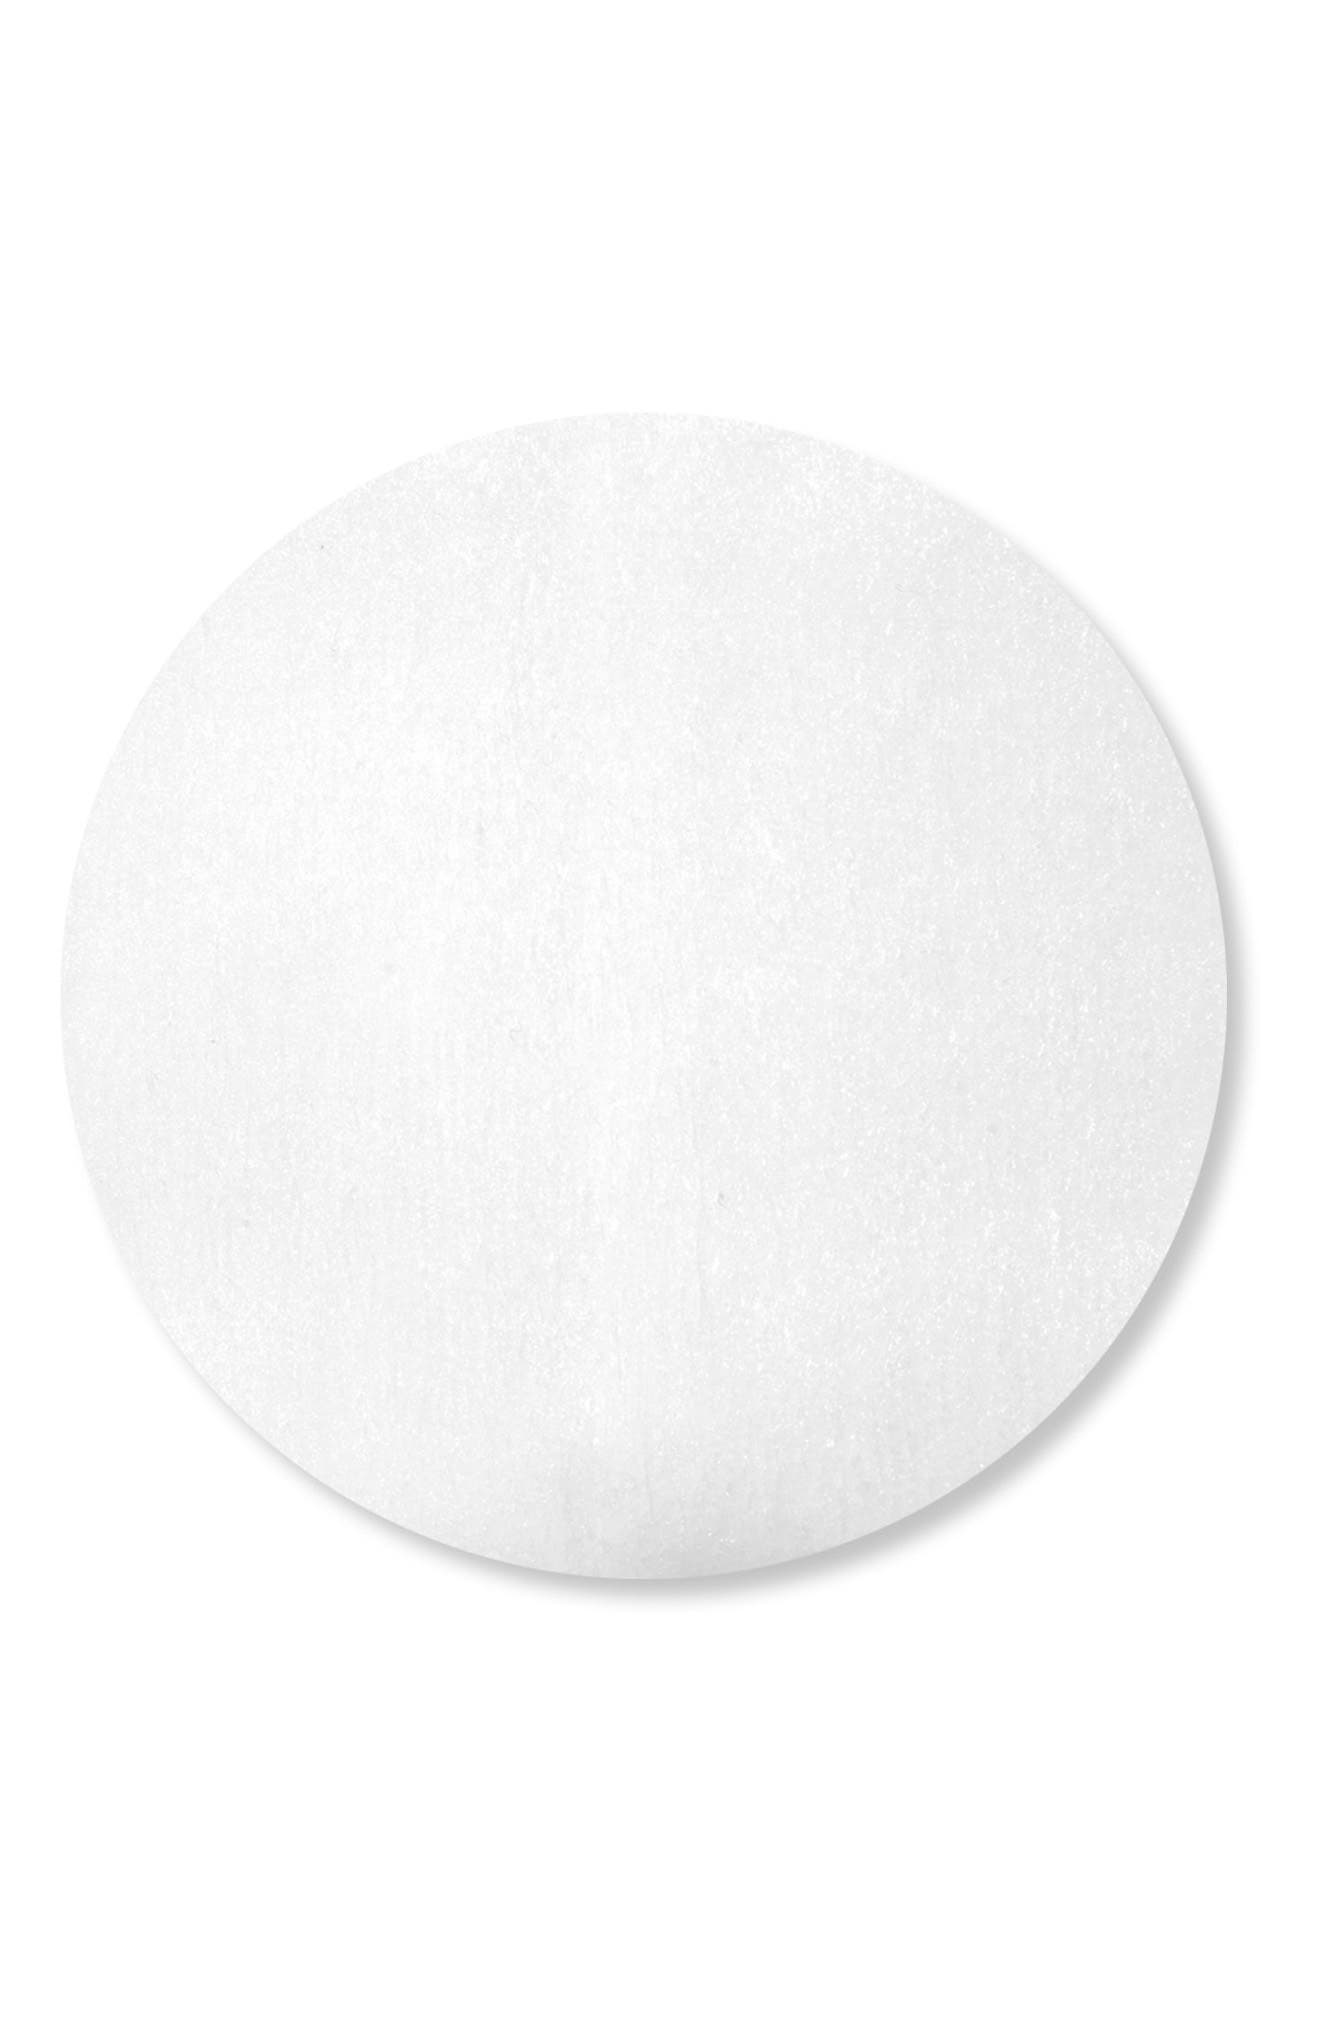 SPACE.NK.apothecary Rodial Vitamin C Brightening Pads,                             Alternate thumbnail 4, color,                             No Color